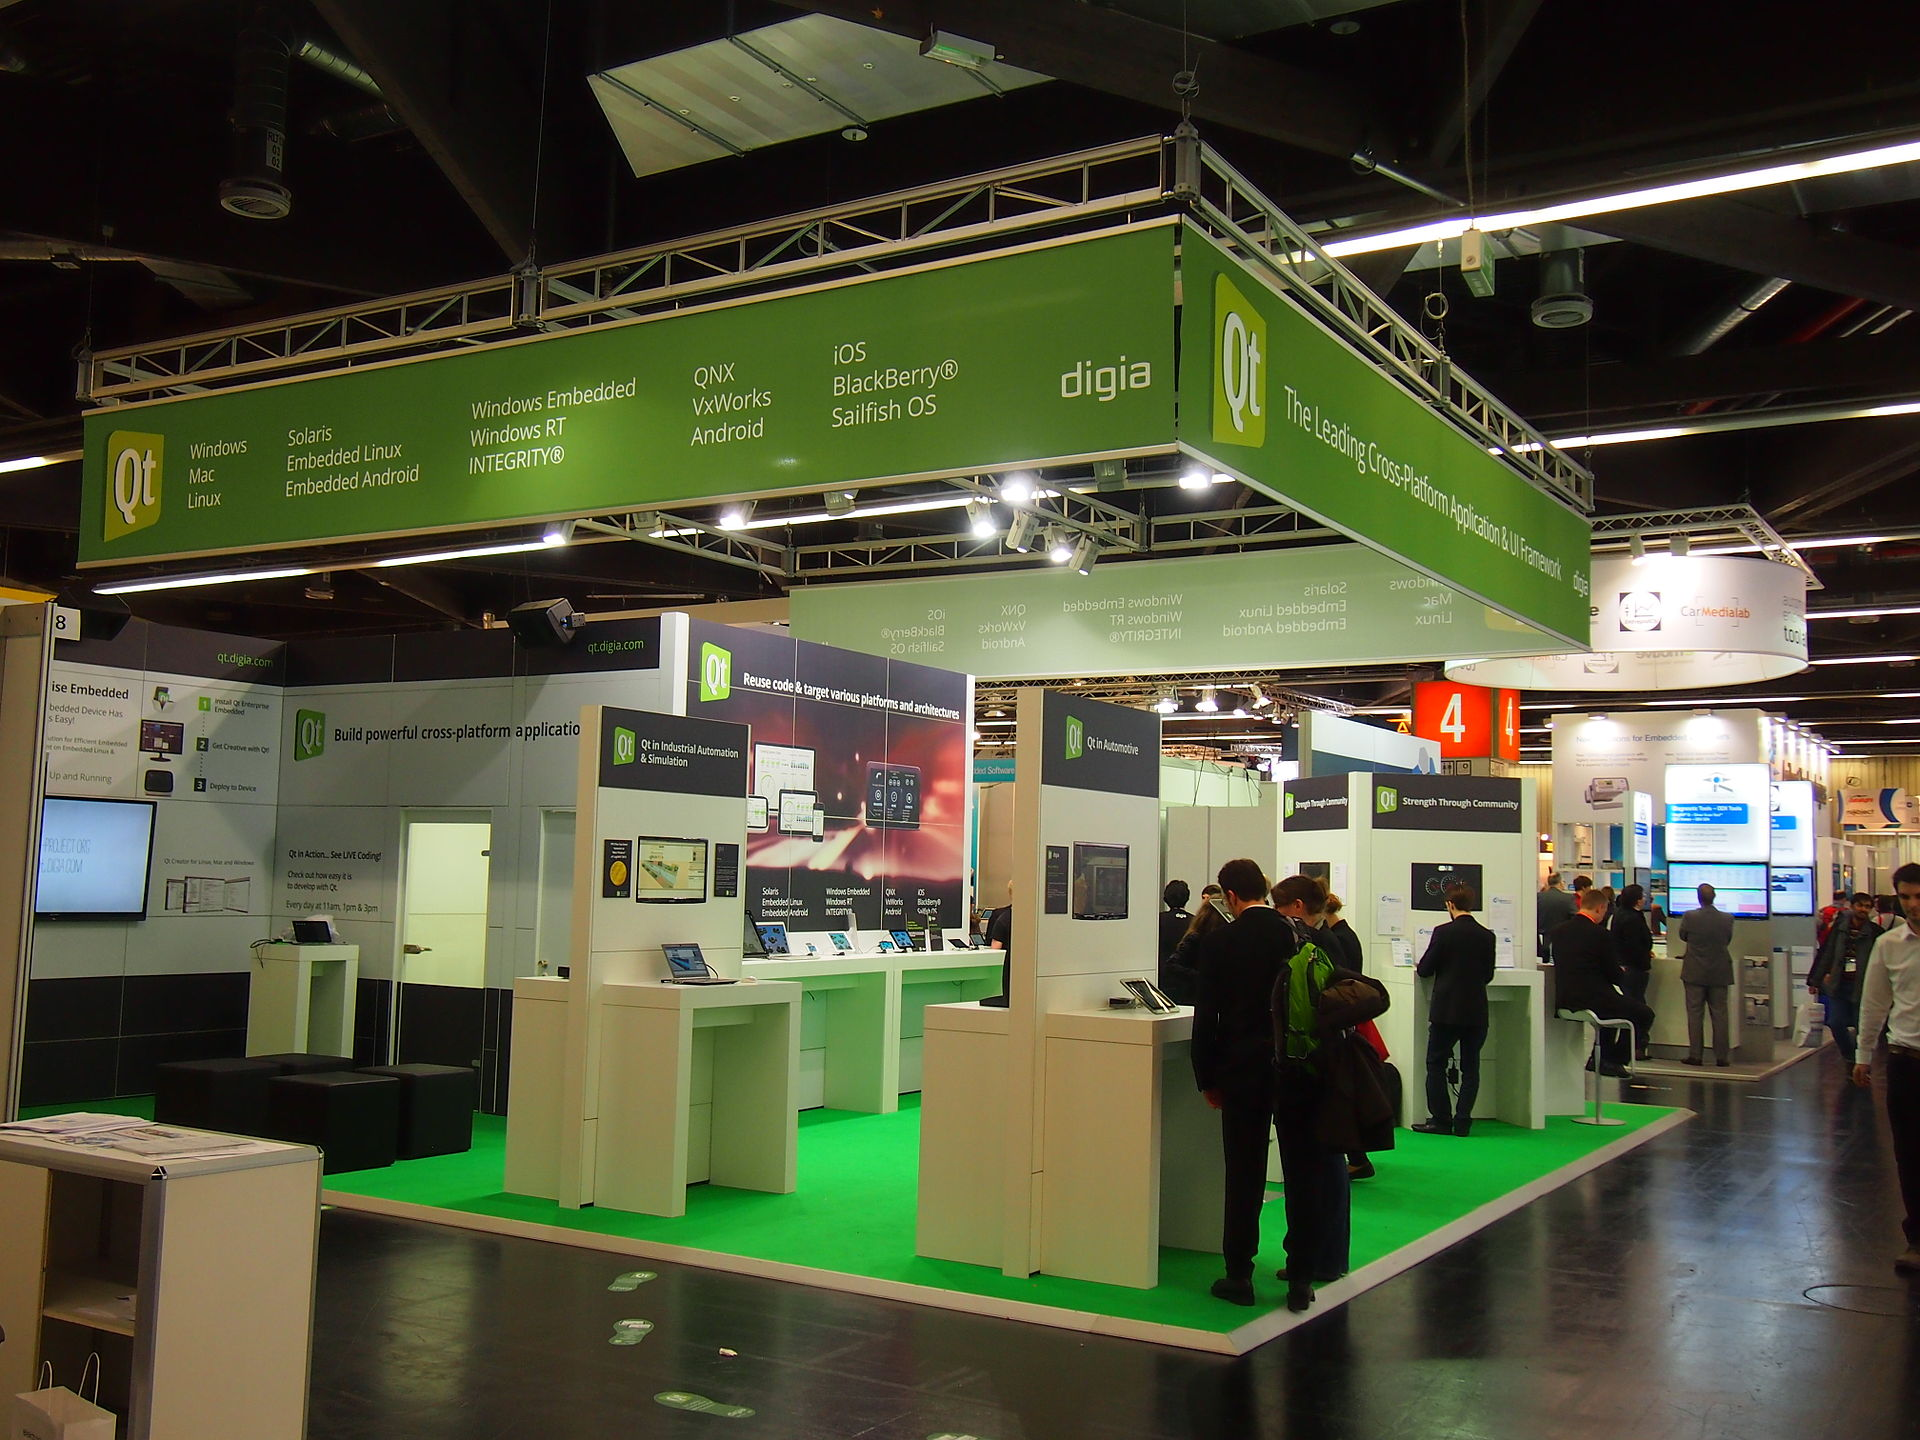 Exhibition Stand Wiki : Embedded world exhibition conference wikipedia